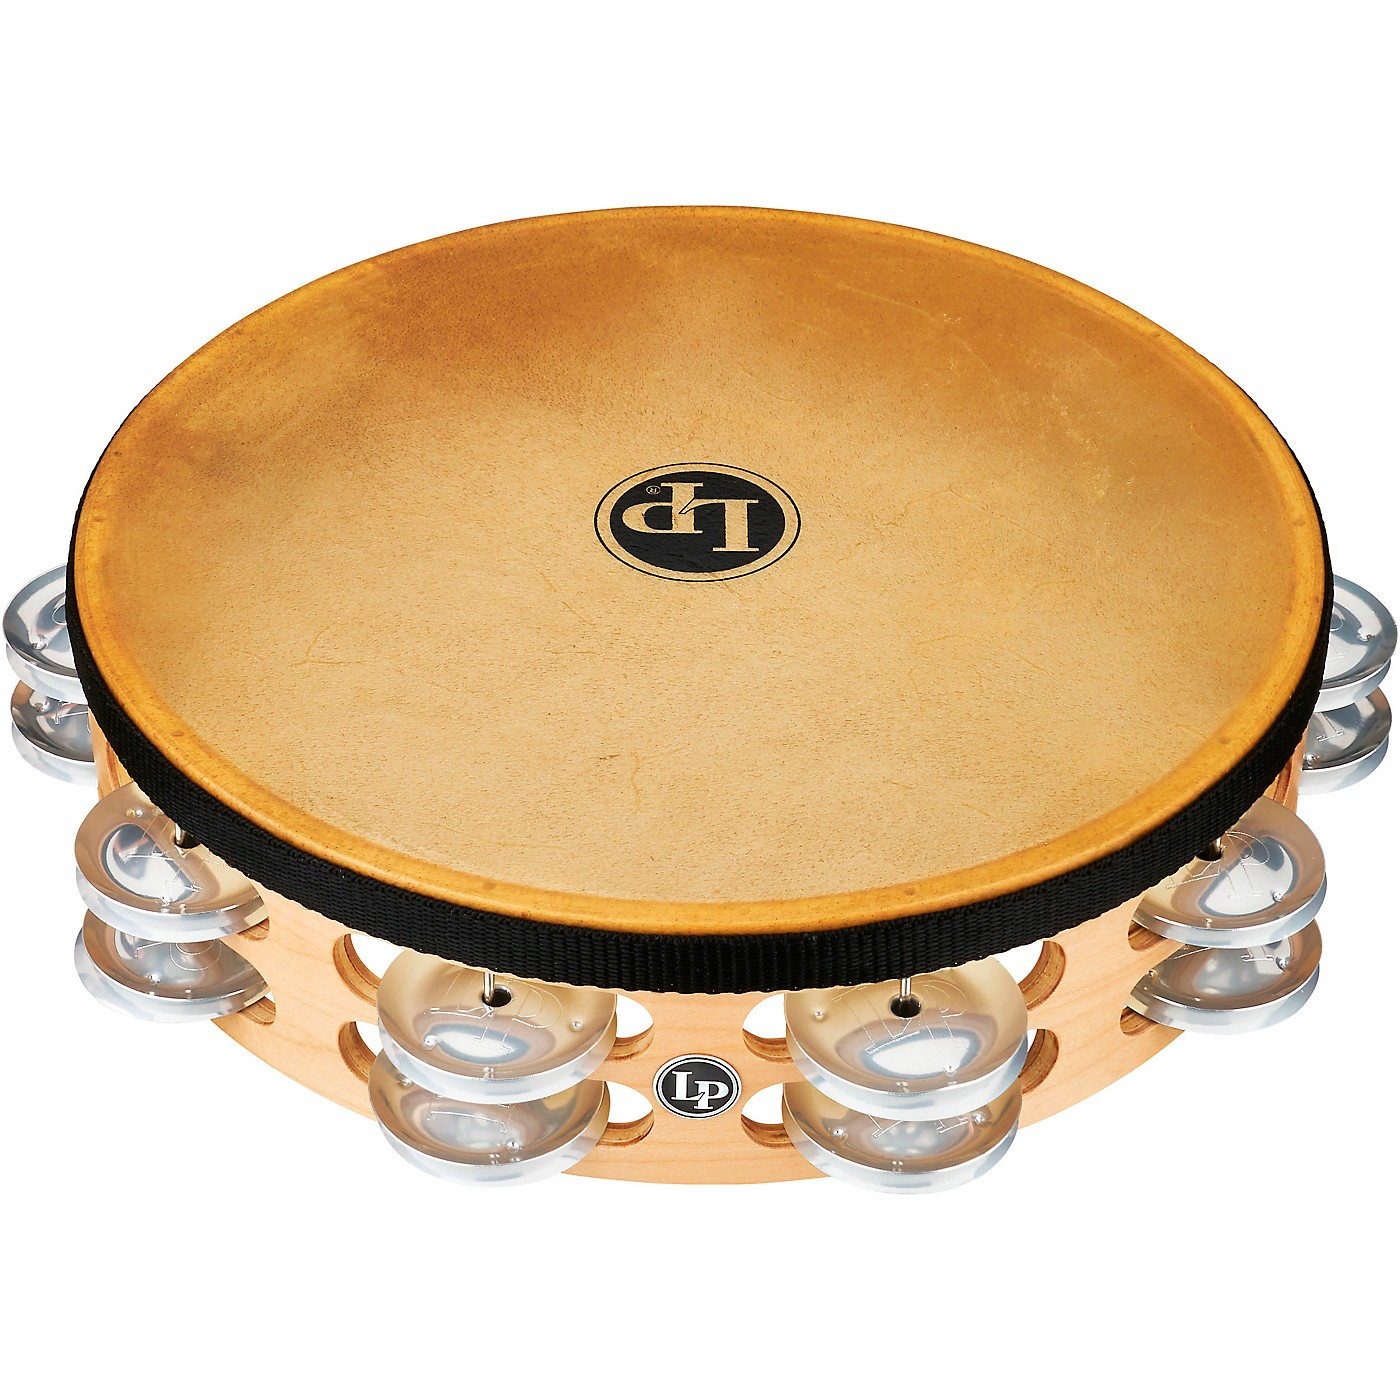 LP Pro Double Row Headed Tambourine thumbnail